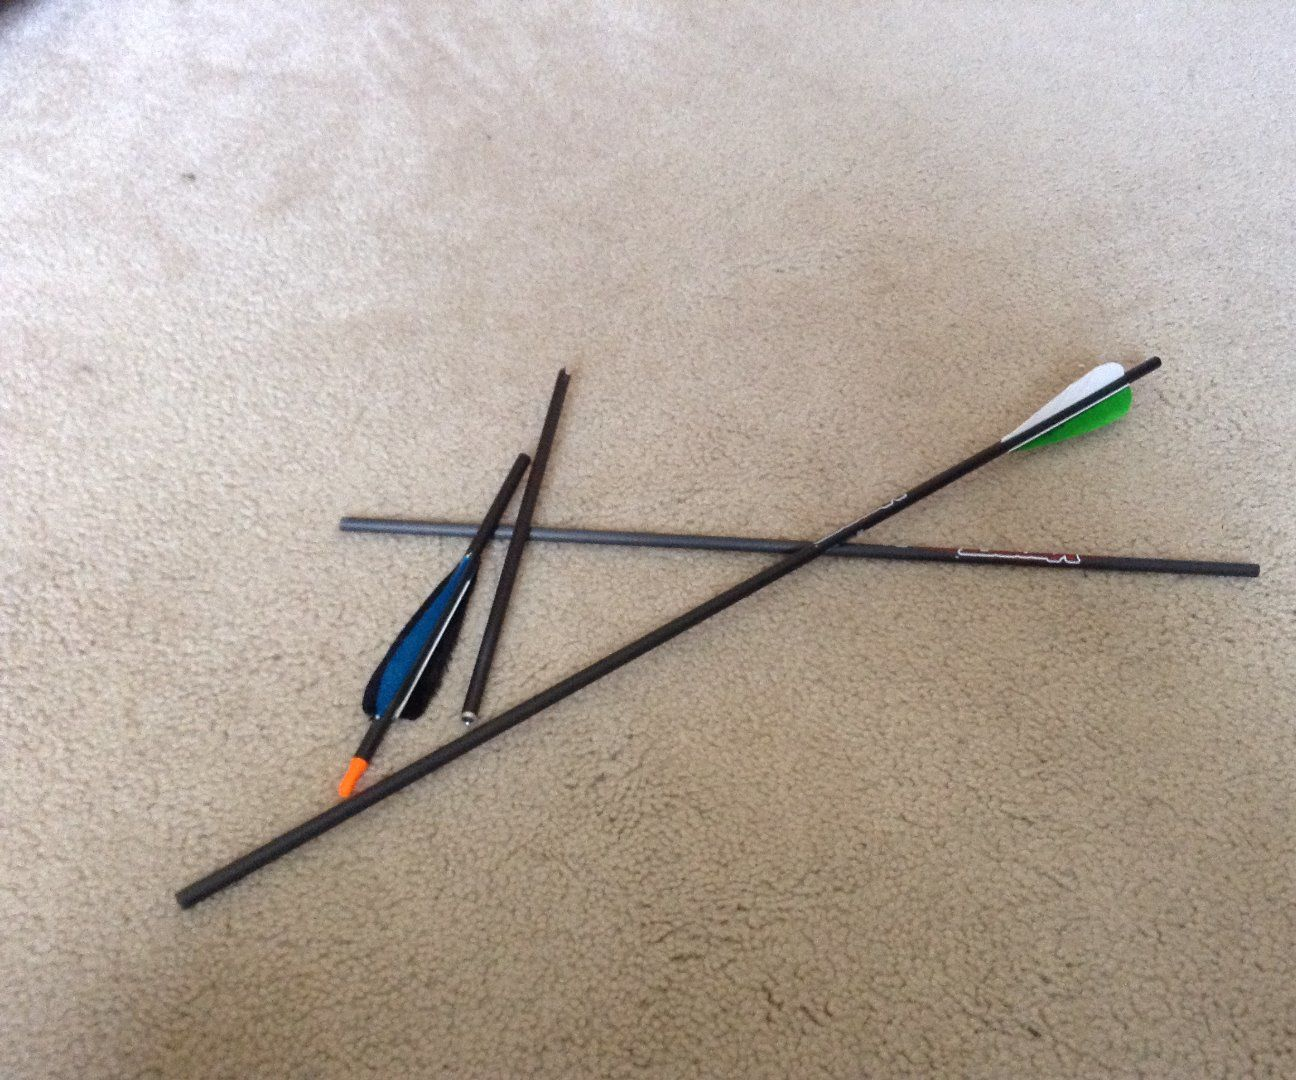 4 uses for broken arrows